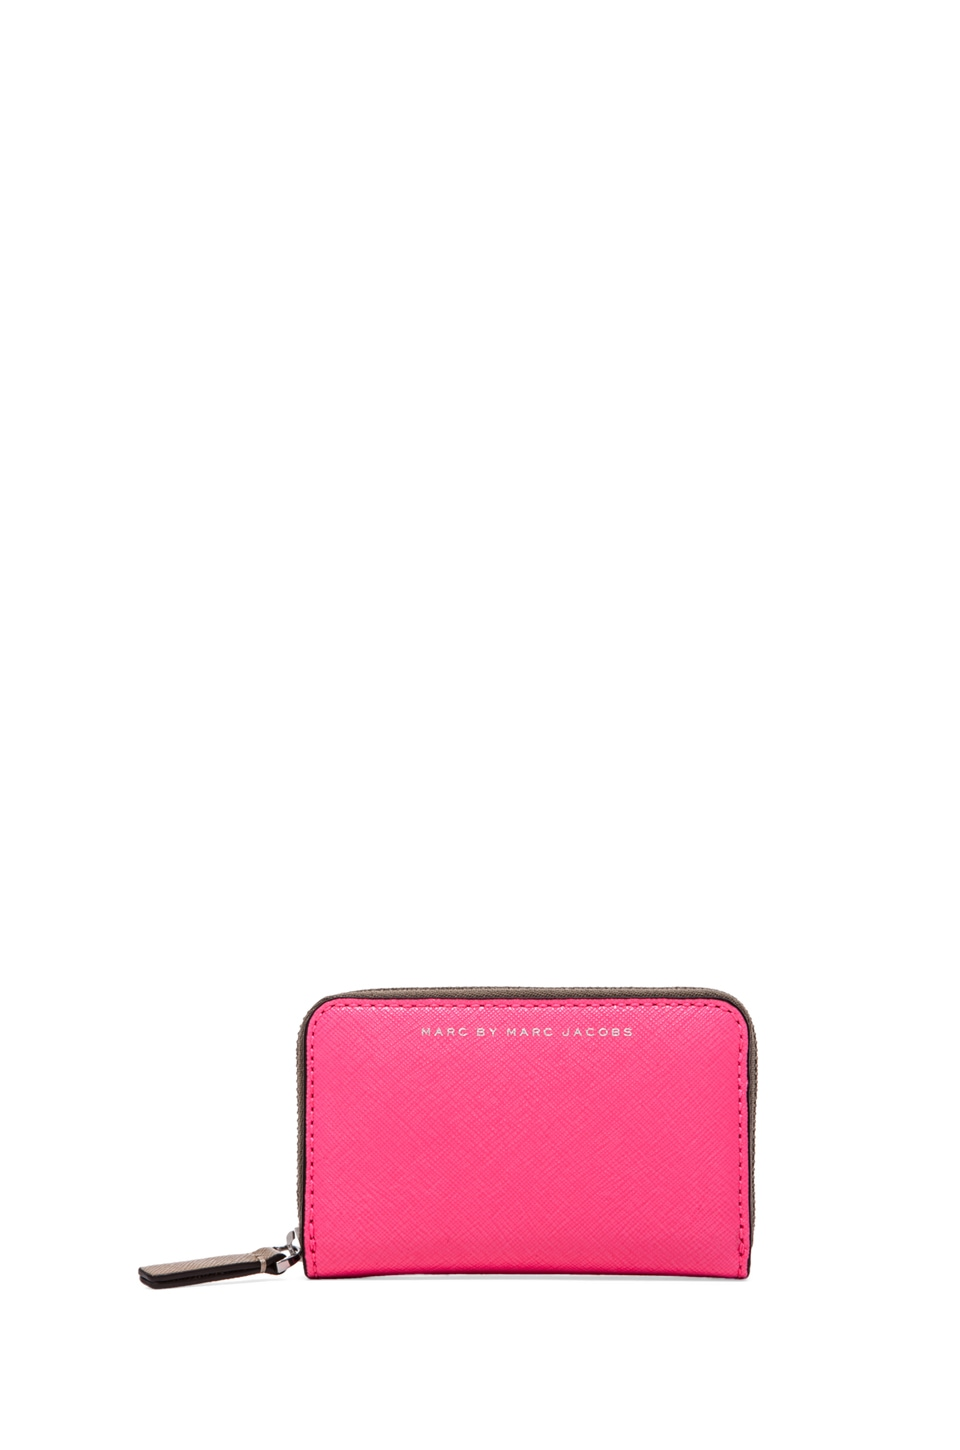 Marc by Marc Jacobs Sophisticato Colorblocked Zip Card Case in Knockout pink